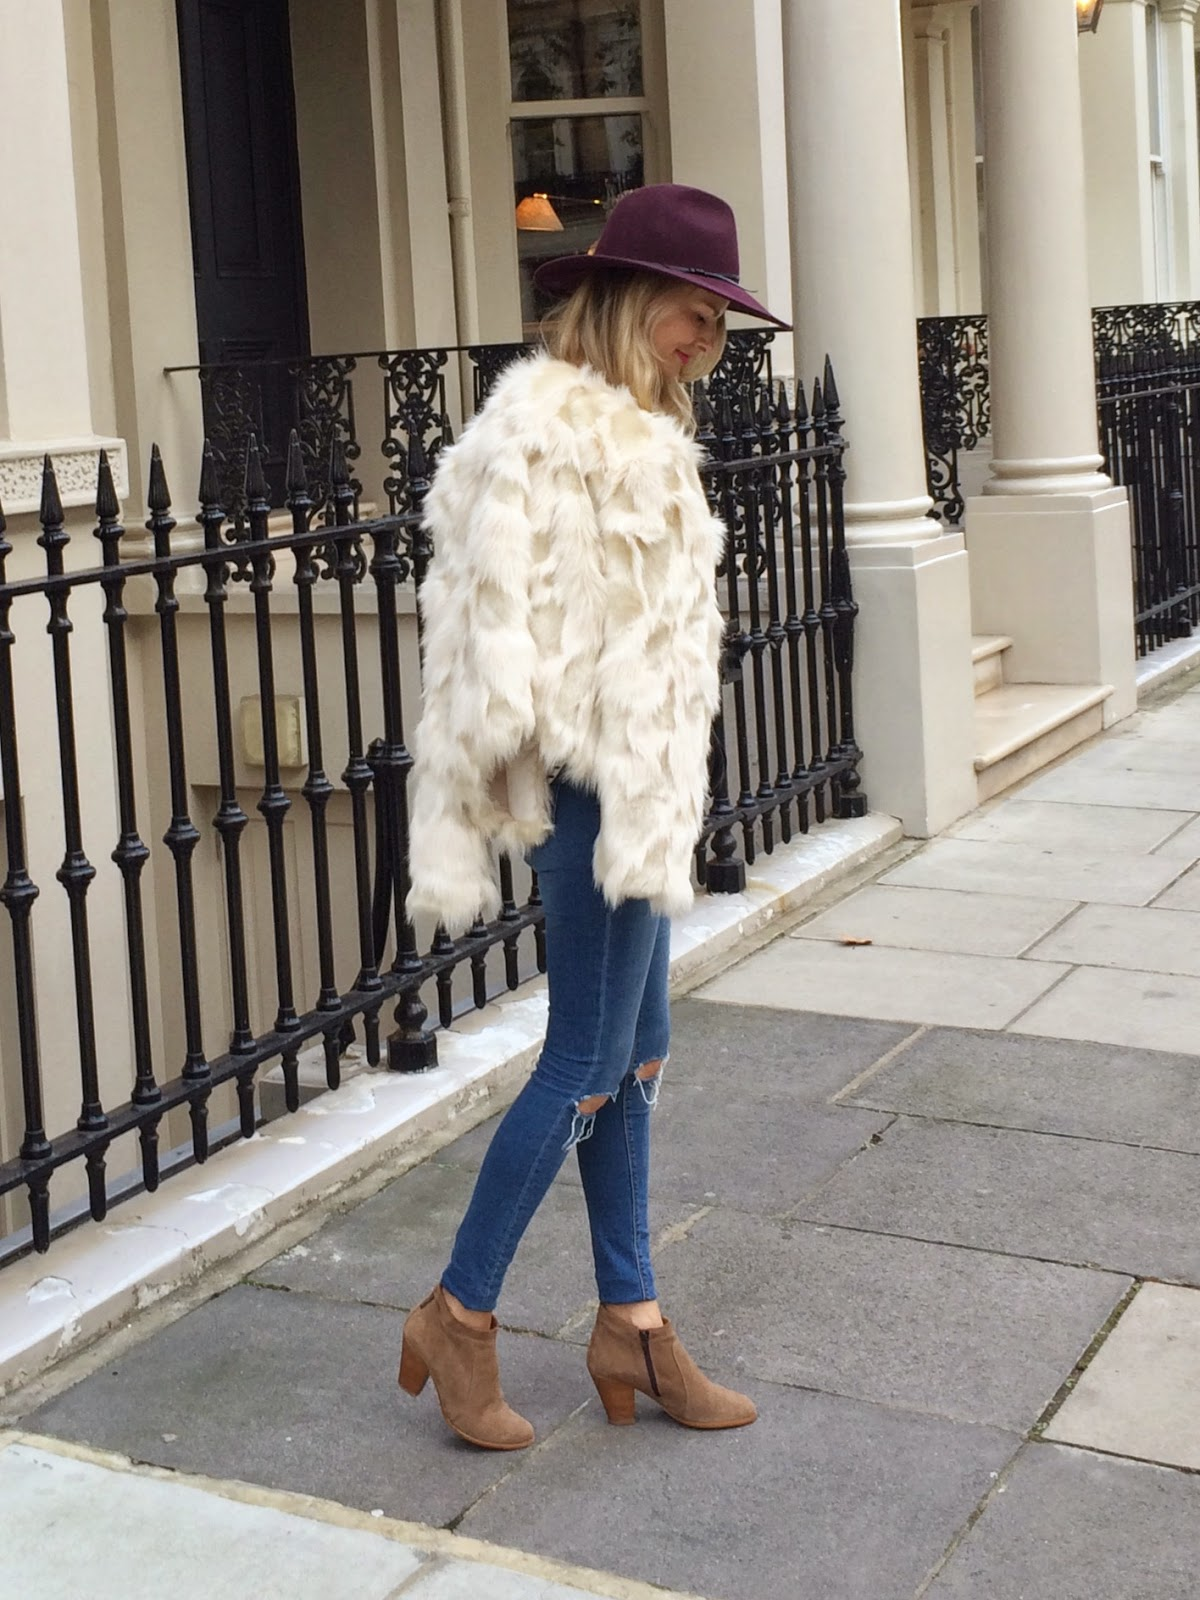 fashion blogger london, beige ankle boots, asos denim, asos jeans, asos busted kness jeans, reiss hat, autumn staples, herbst look